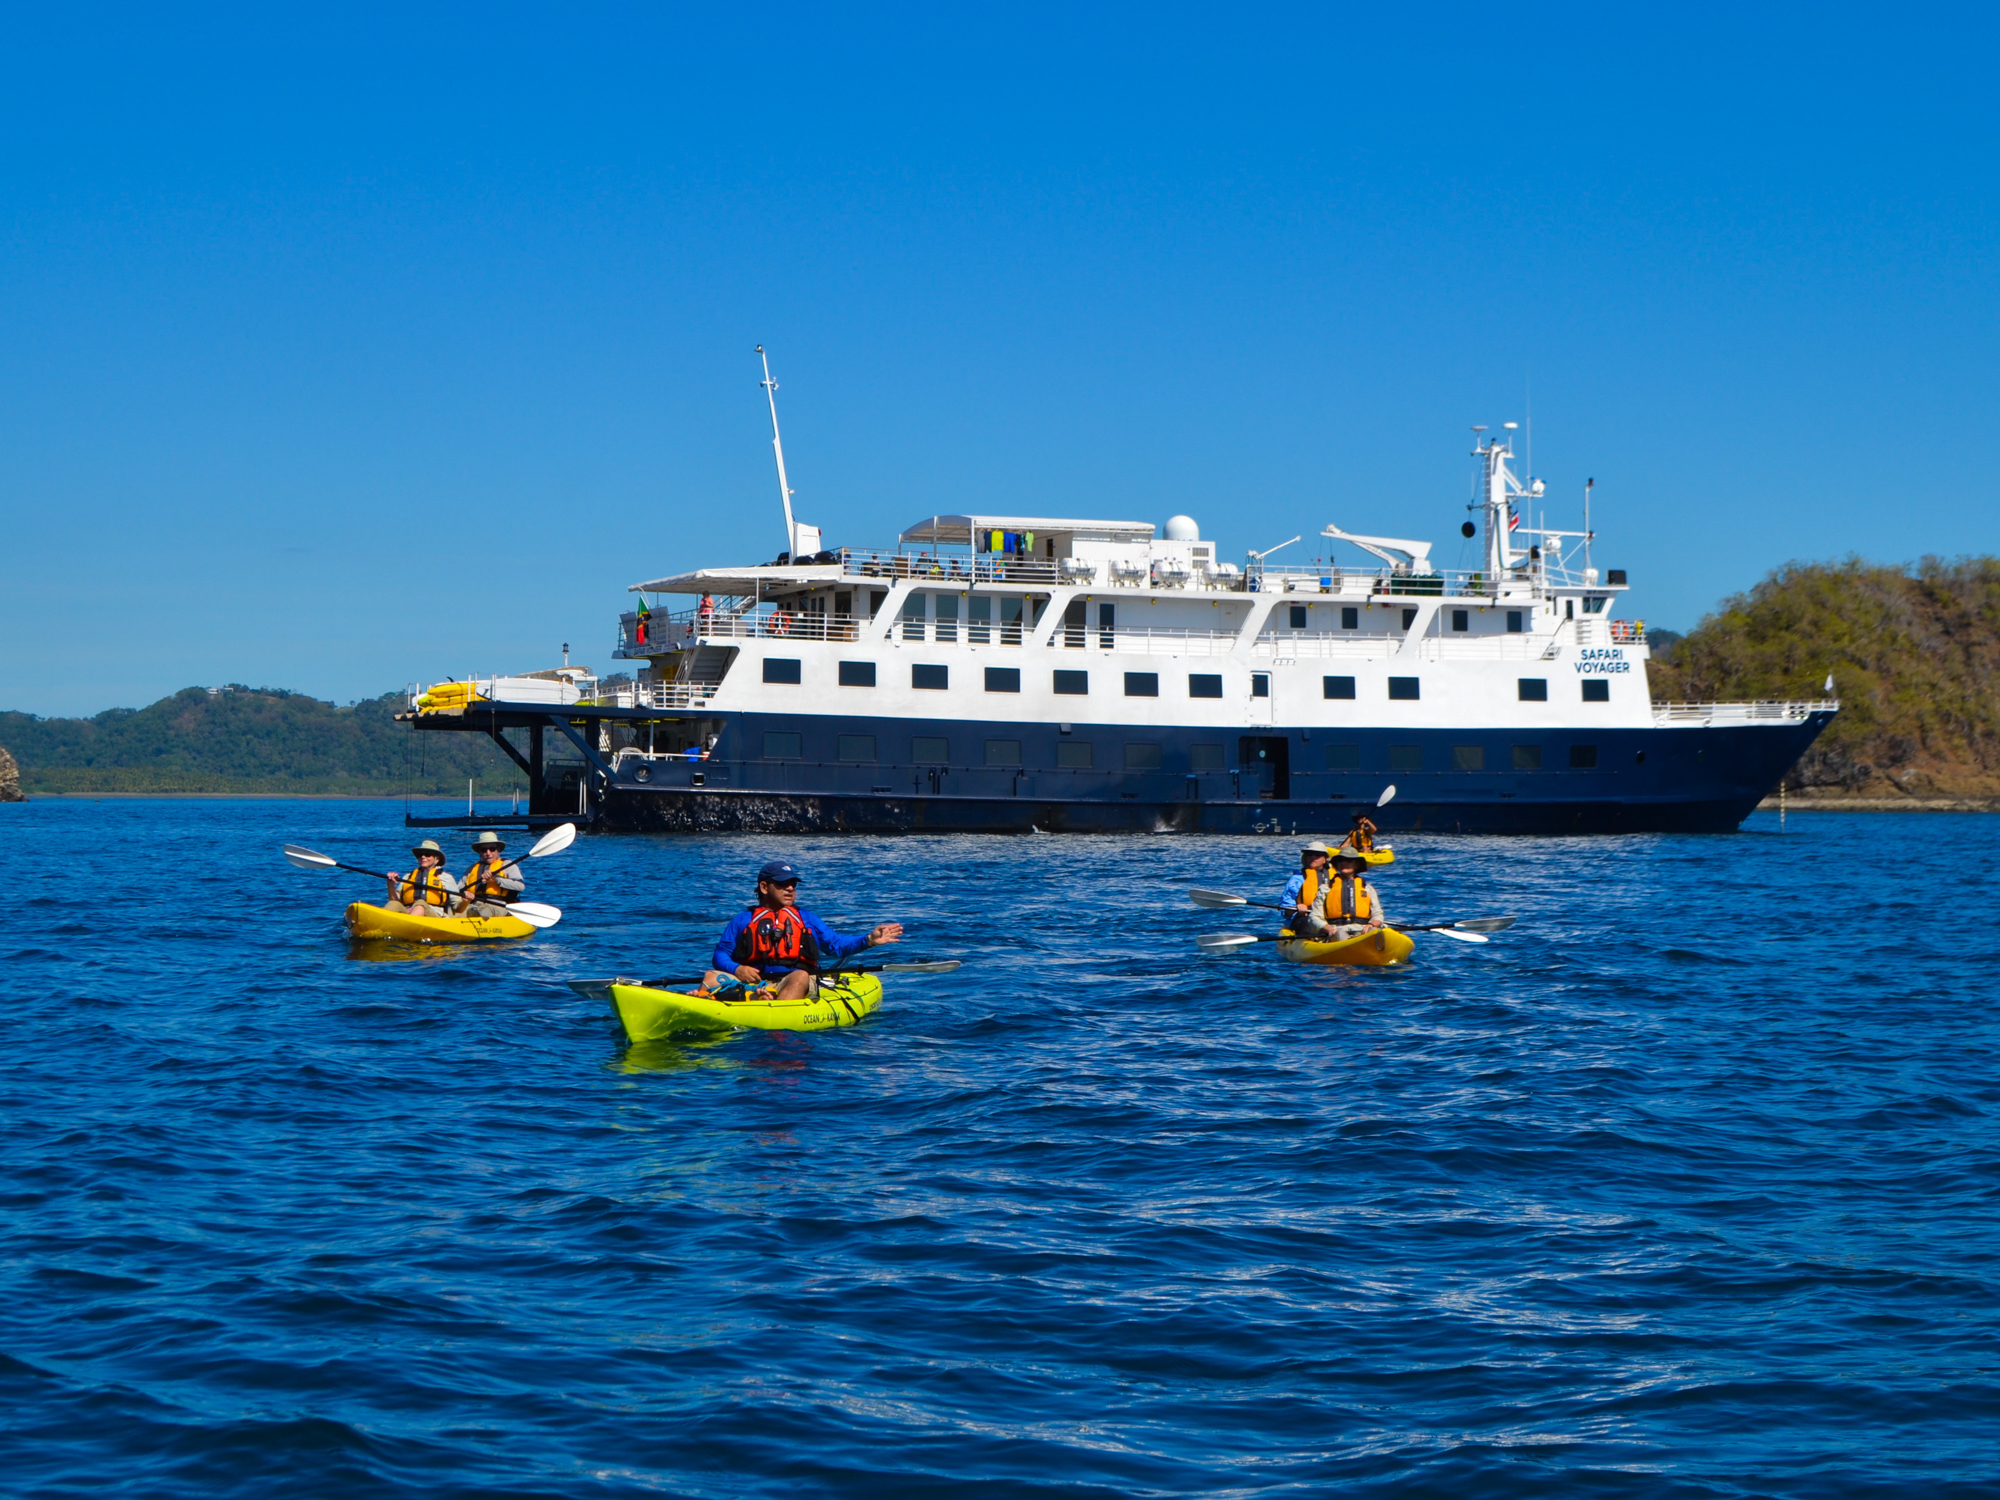 Kayakers enjoying waters from Costa Rica Small Ship Cruise